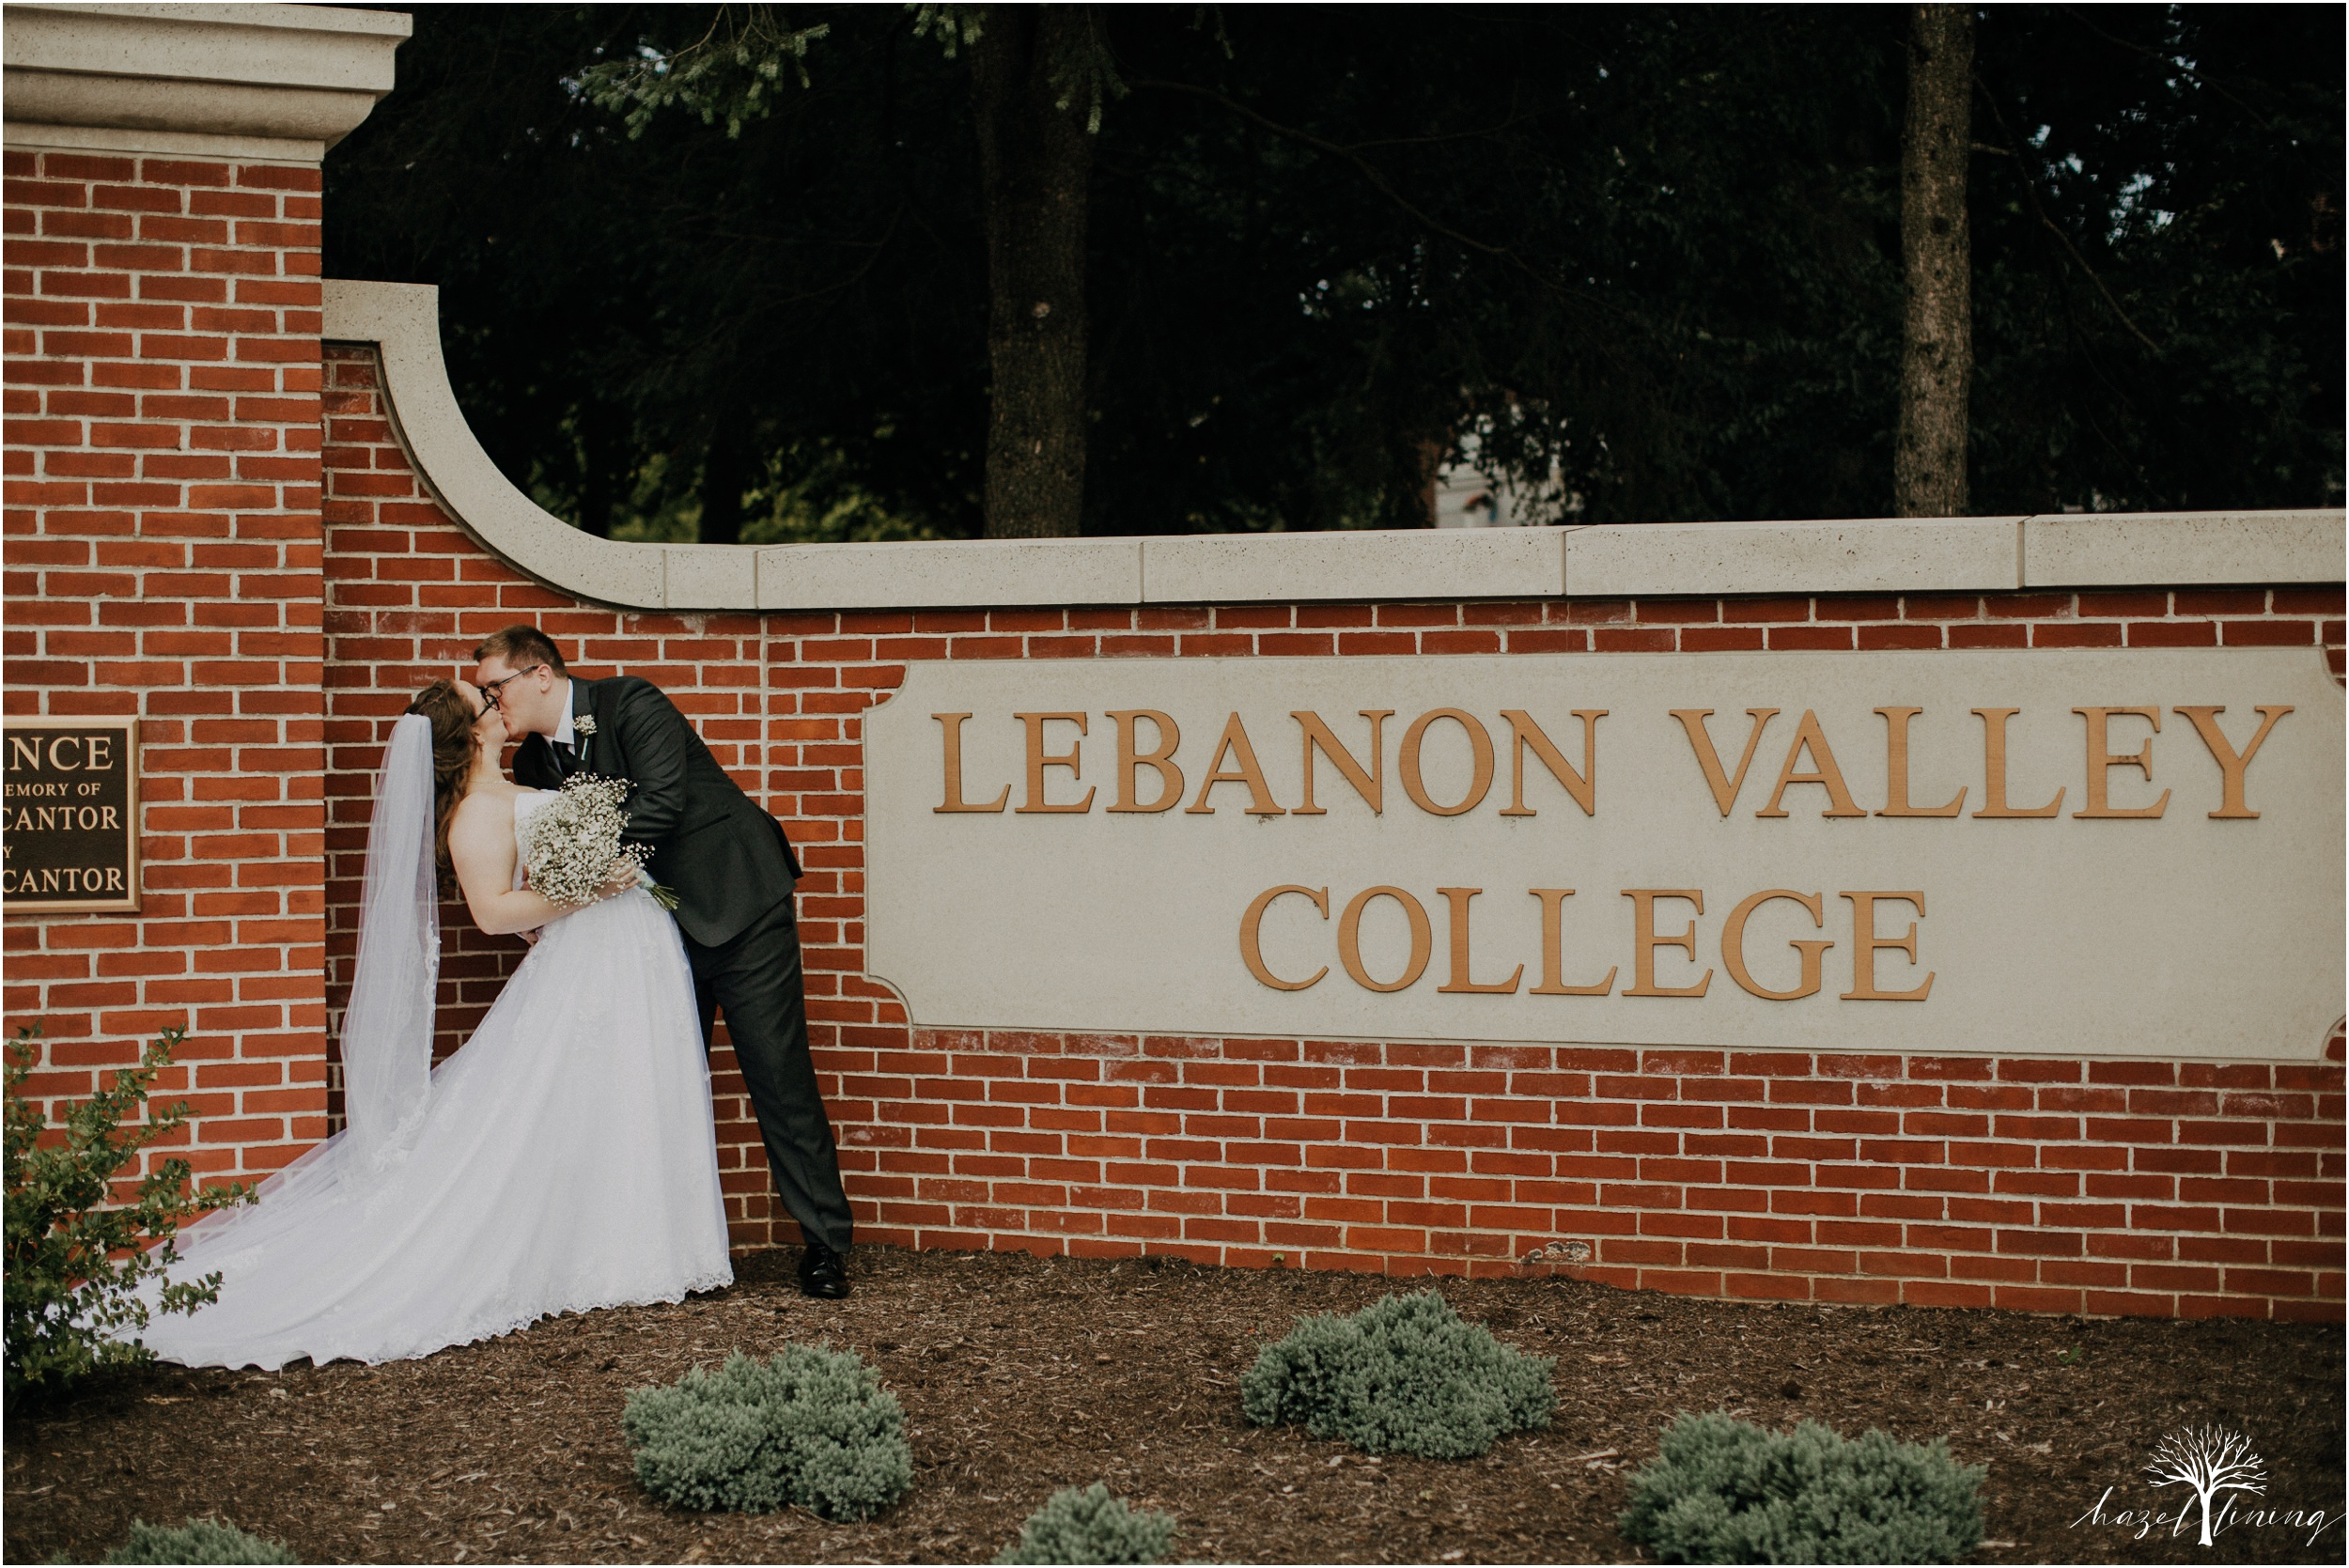 laura-zach-mccaskill-harmony-hall-lebanon-valley-college-summer-wedding-hazel-lining-photography-destination-elopement-wedding-engagement-photography_0094.jpg